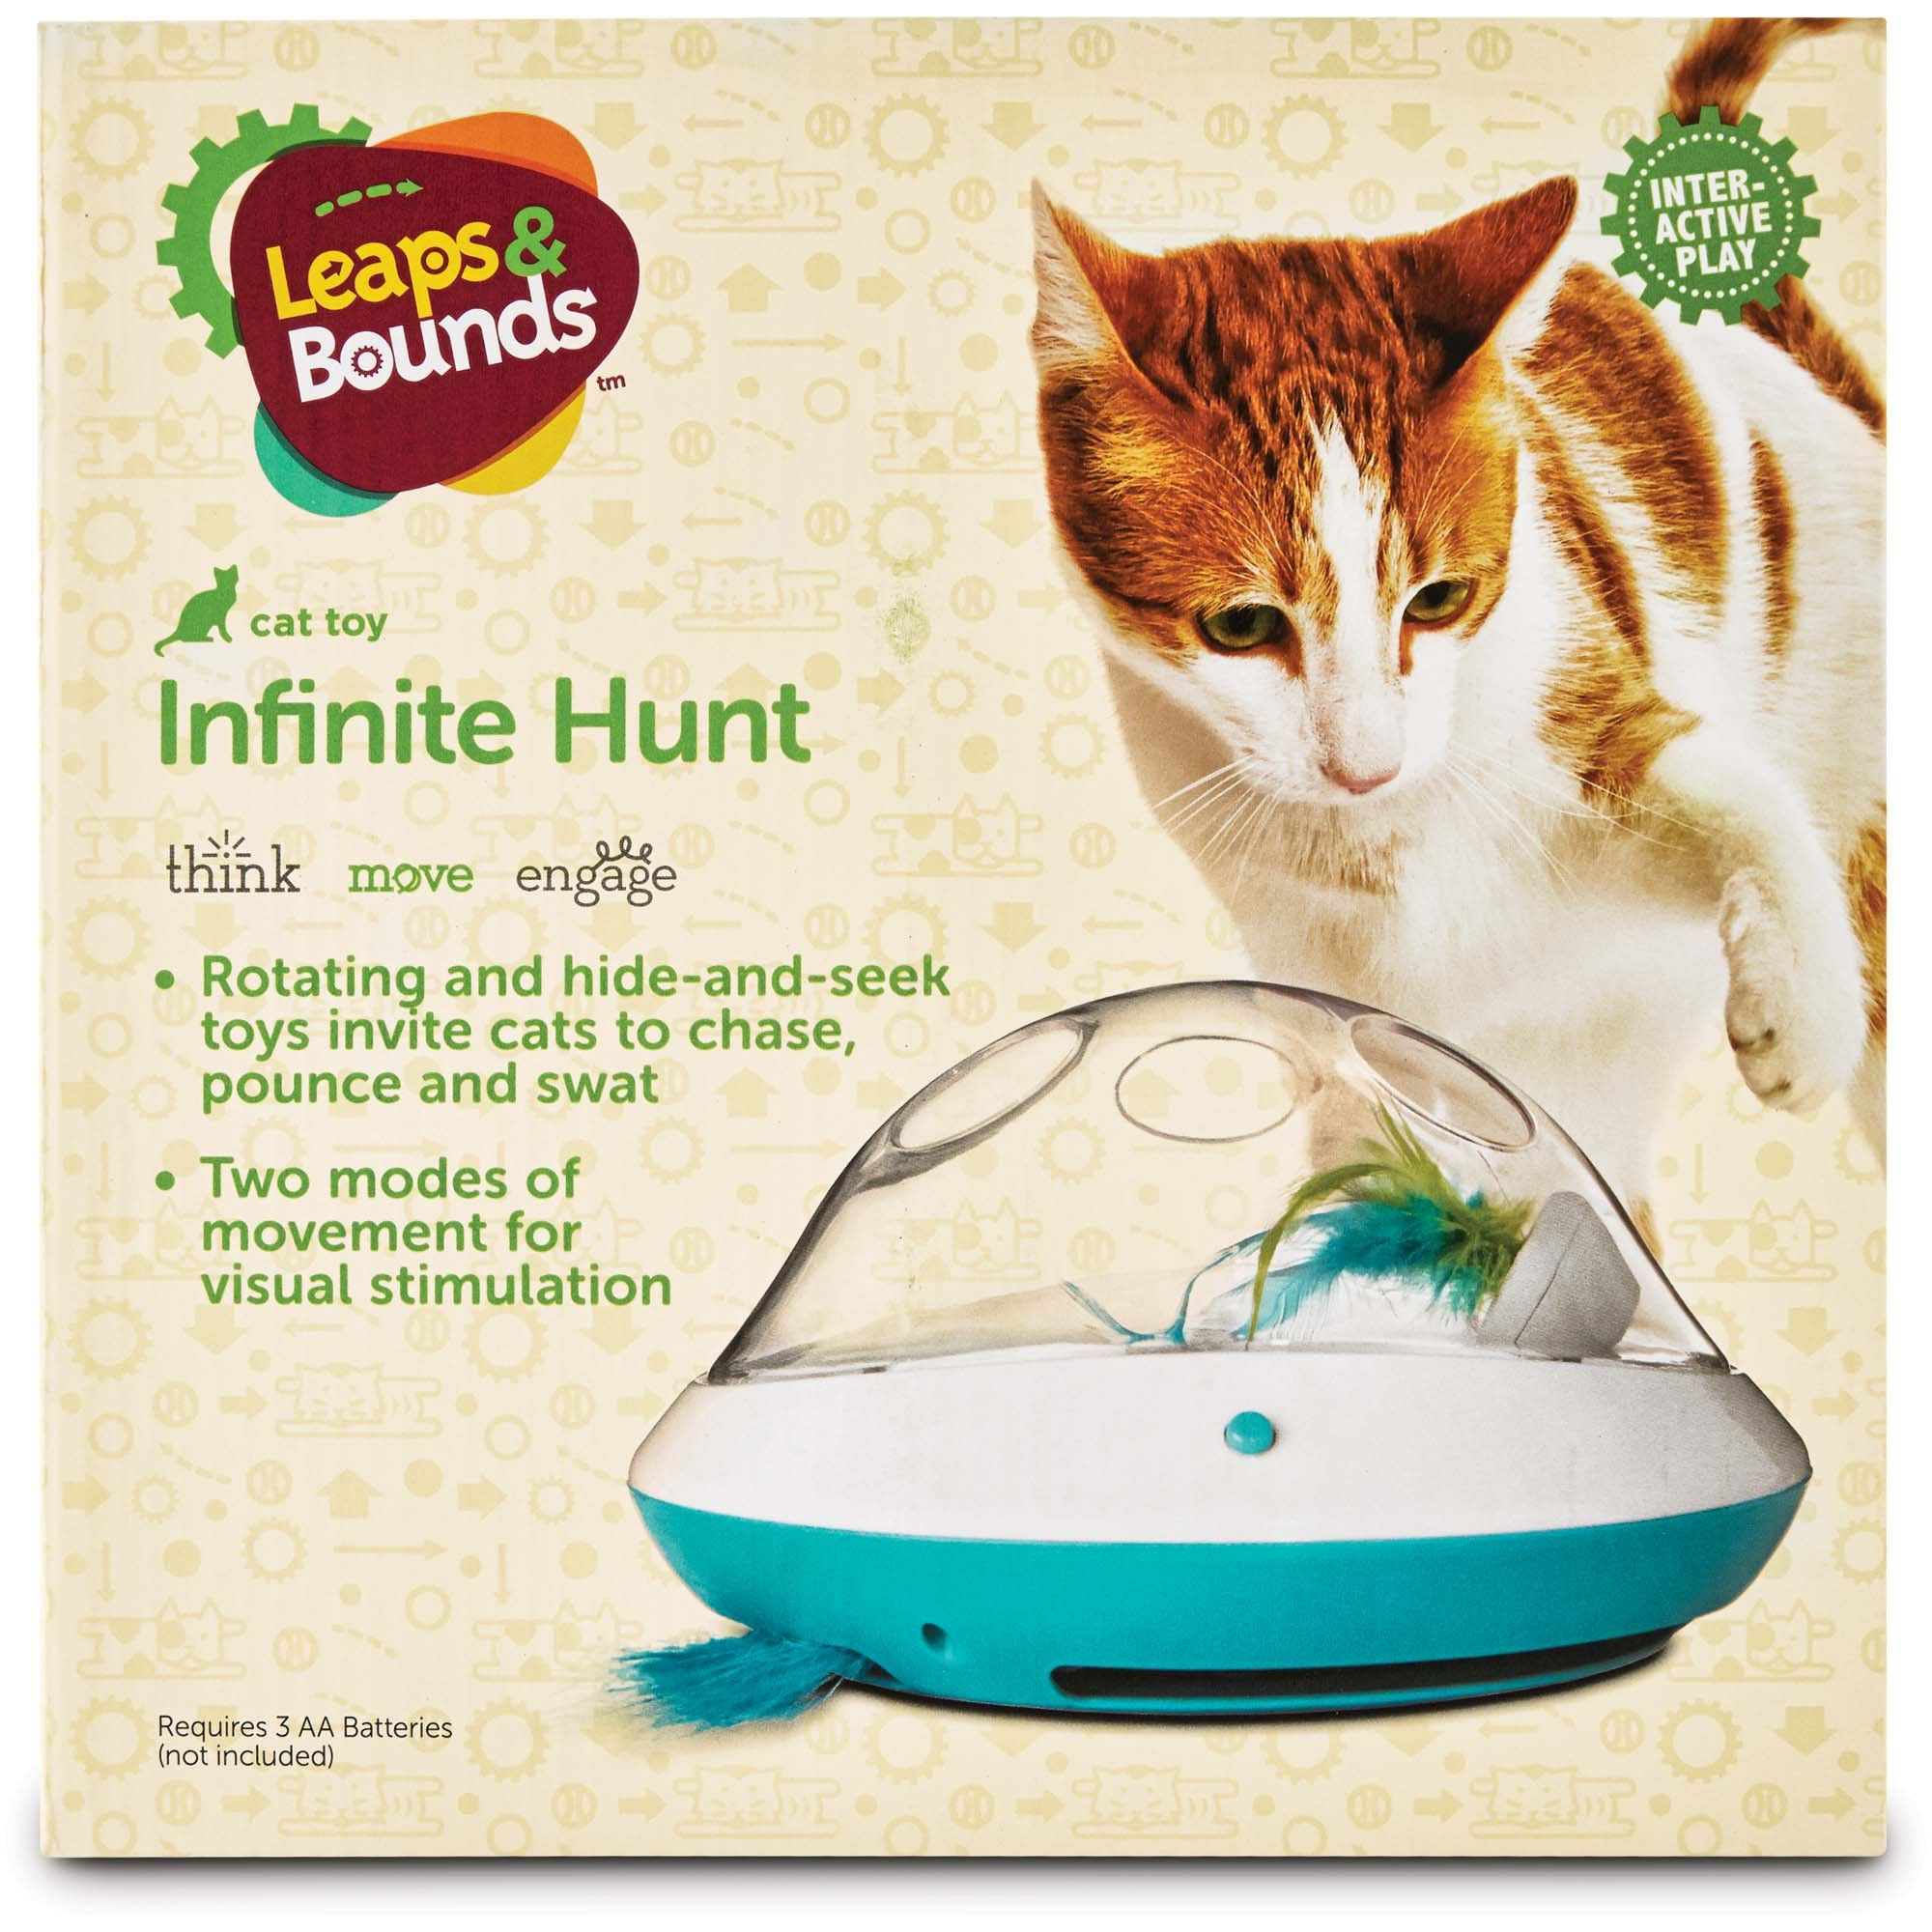 Leaps Bounds Electric Play Dome For Cats Cats Cat Toys Kitten Care